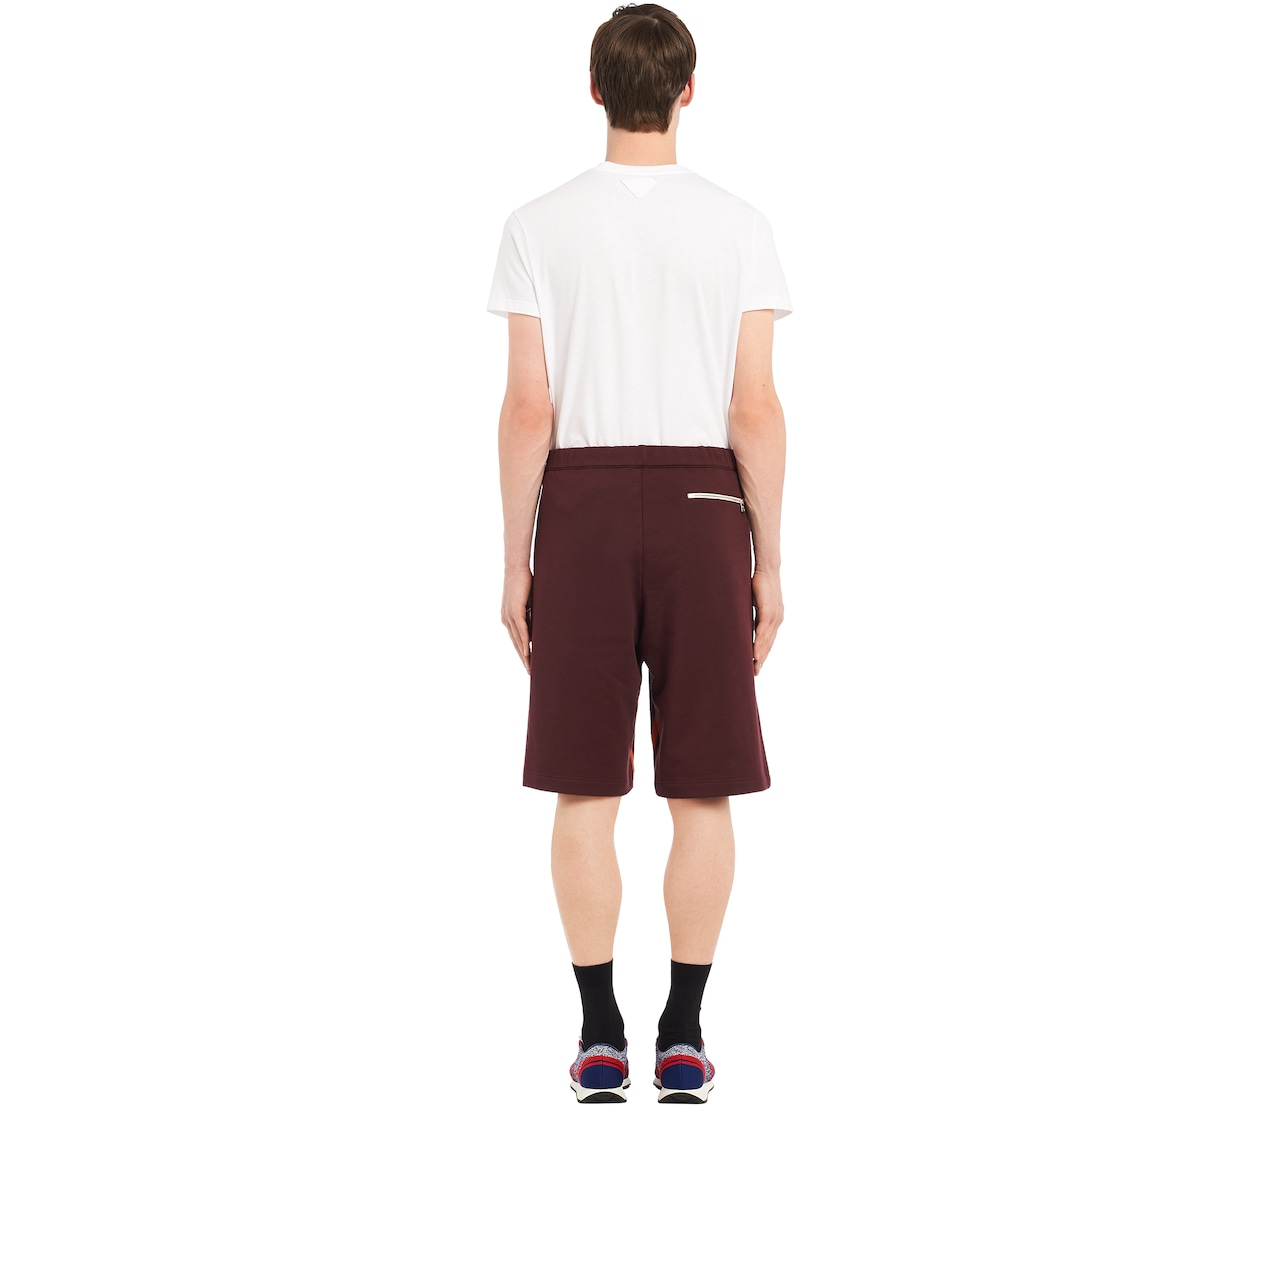 Bermudas with side inserts